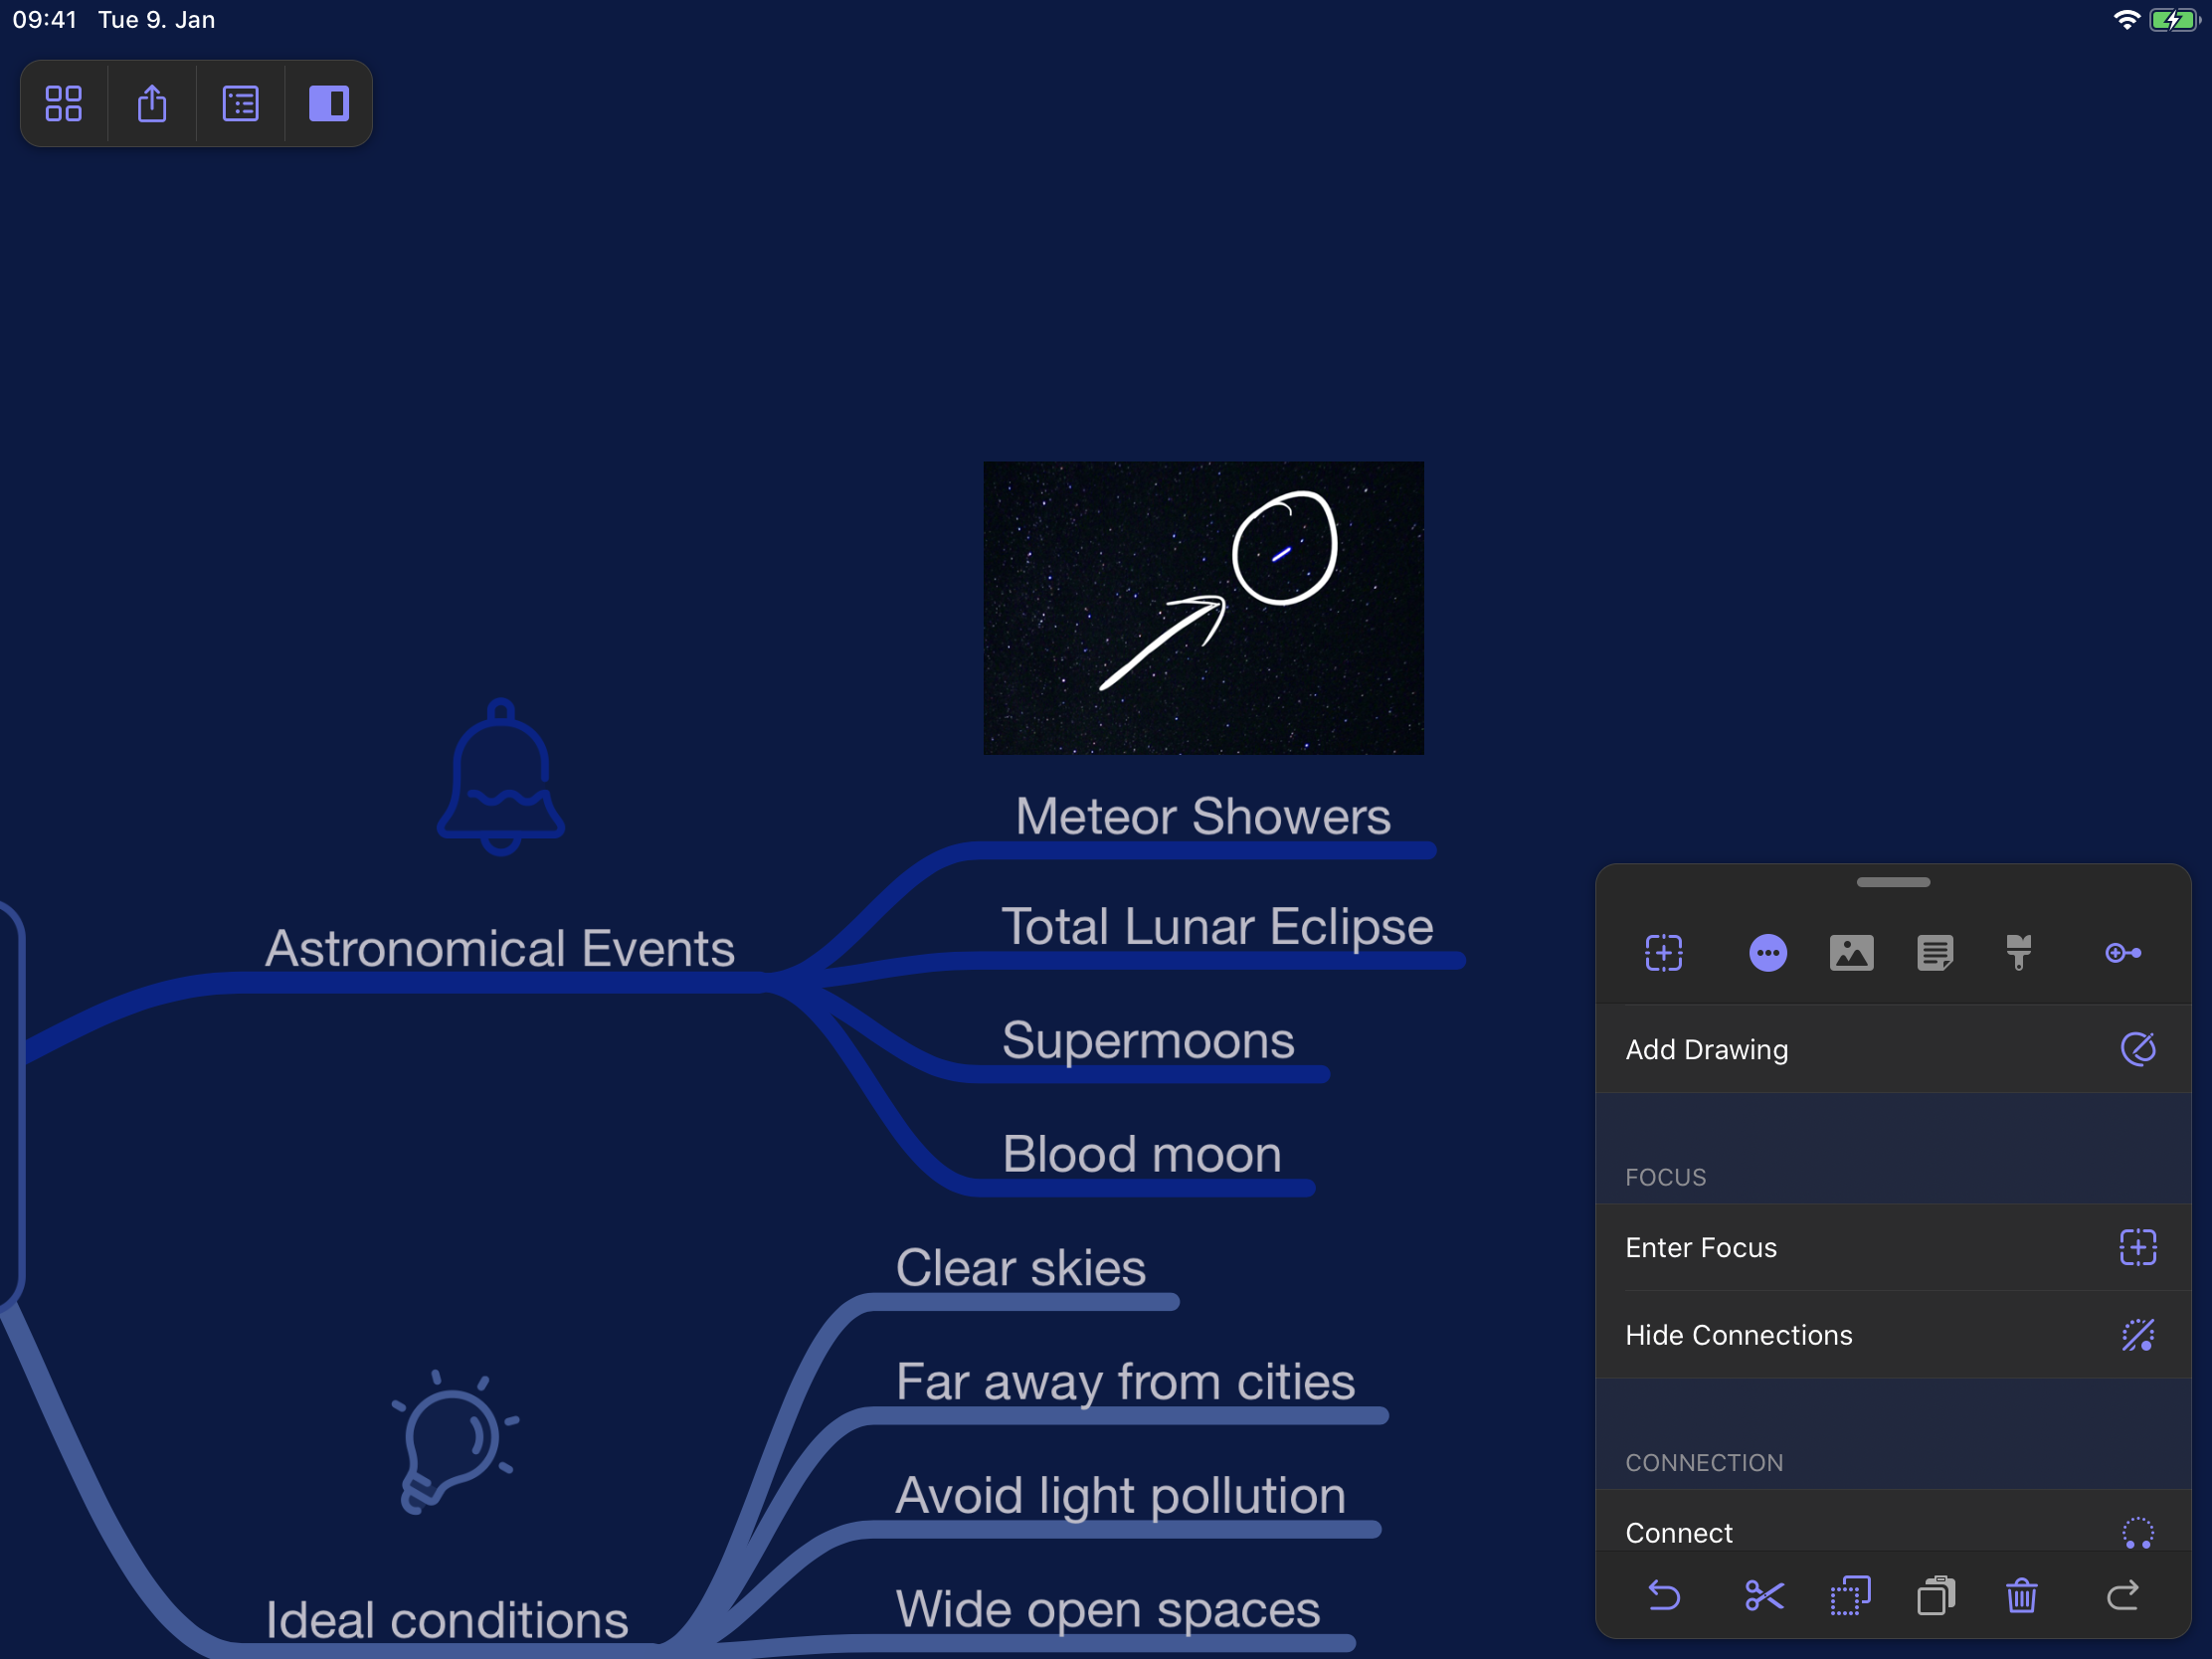 Annotating Images and Drawing in MindNode 6.1